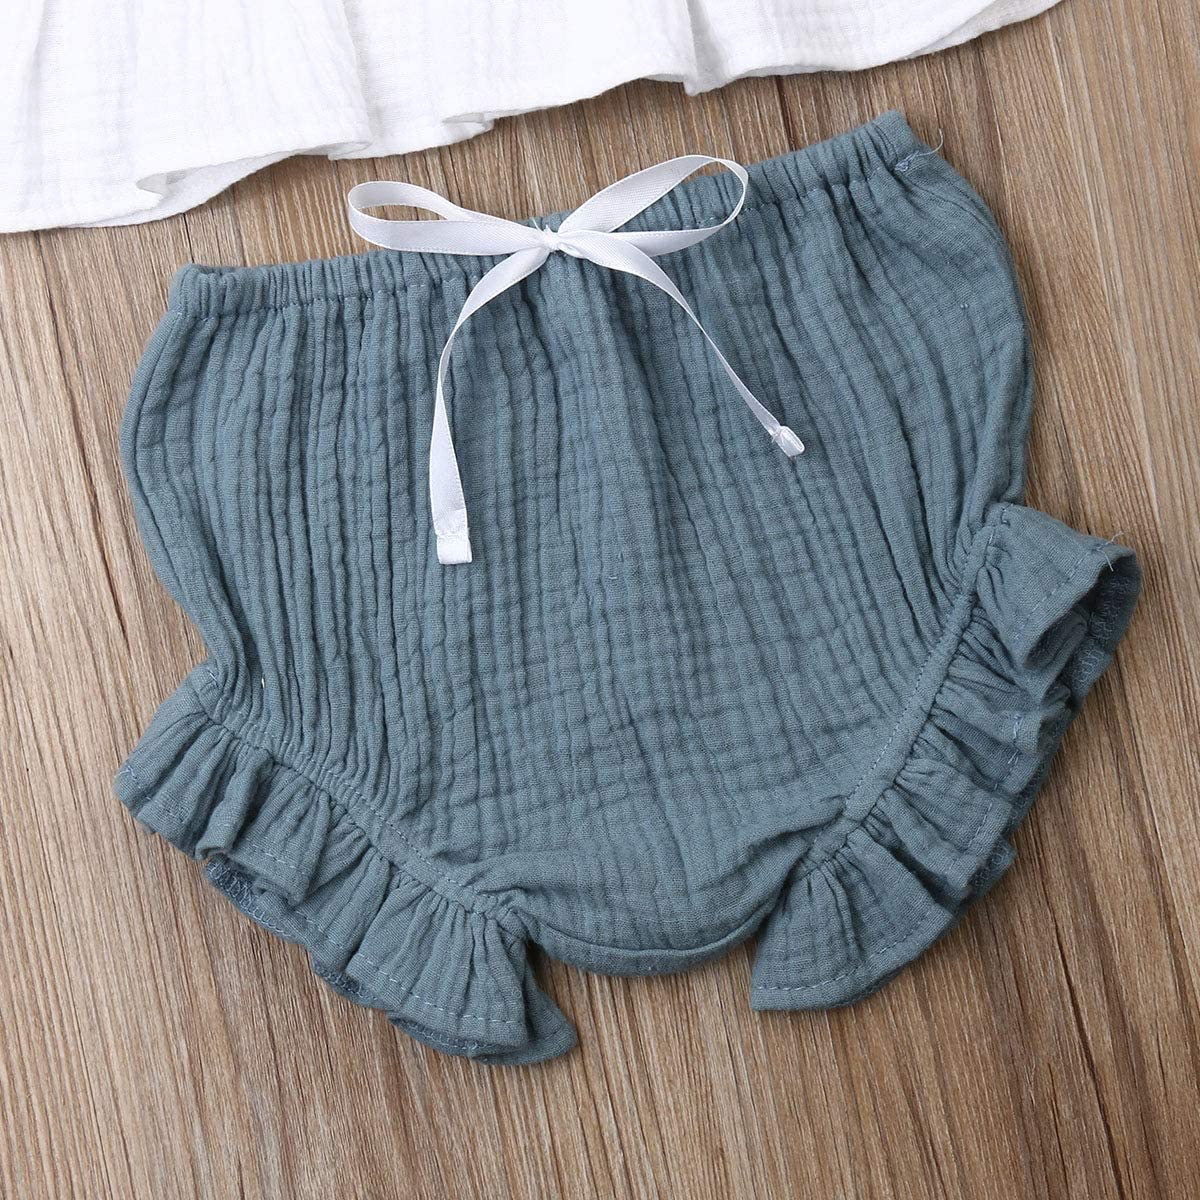 Madjtlqy Infant Toddler Summer Outfit 1-5T Baby Girl Cotton Linen Sleeveless Tank Ruffle Top Bloomer Short Pant